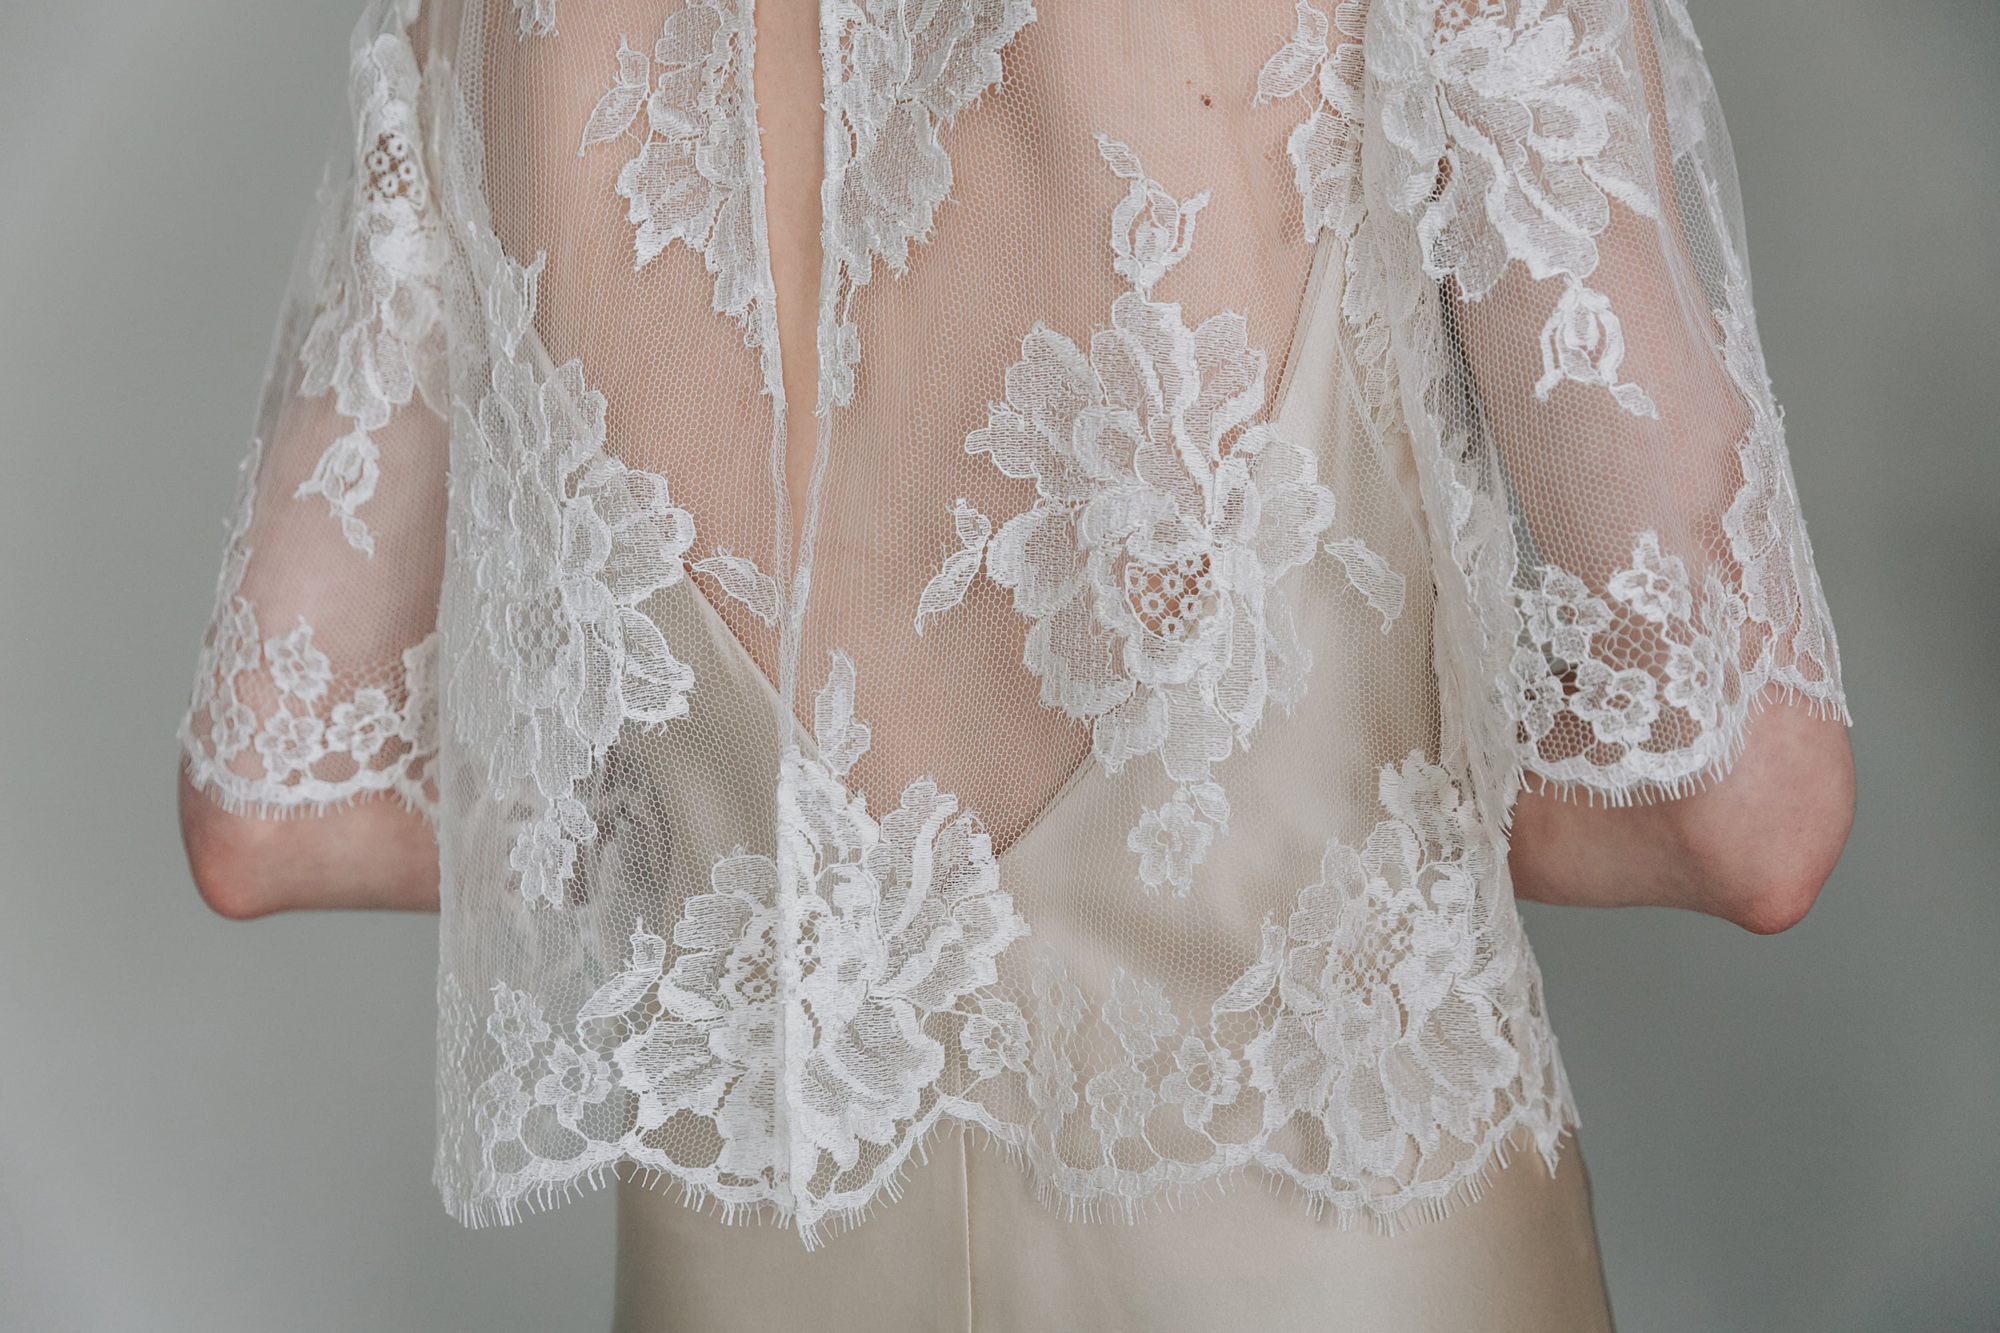 Kate-Beaumont-Sheffield-Rosa-Floral-Lace-Jacket-Thistle-Bias-Cut-Pearl-Silk-Wedding-Gown-11.jpg